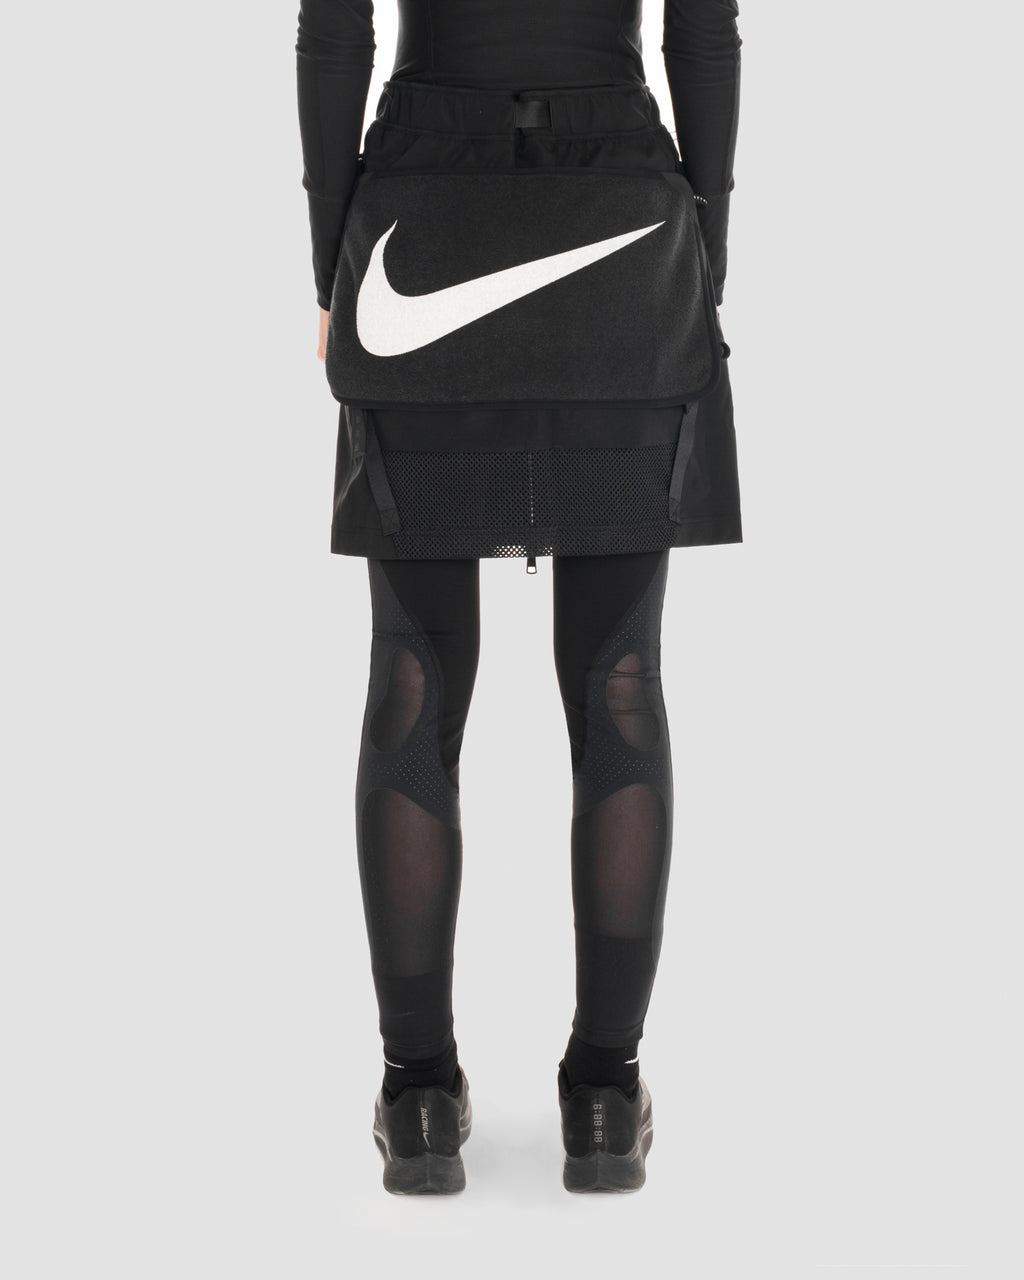 NIKE MMW 2 IN 1 SKIRT